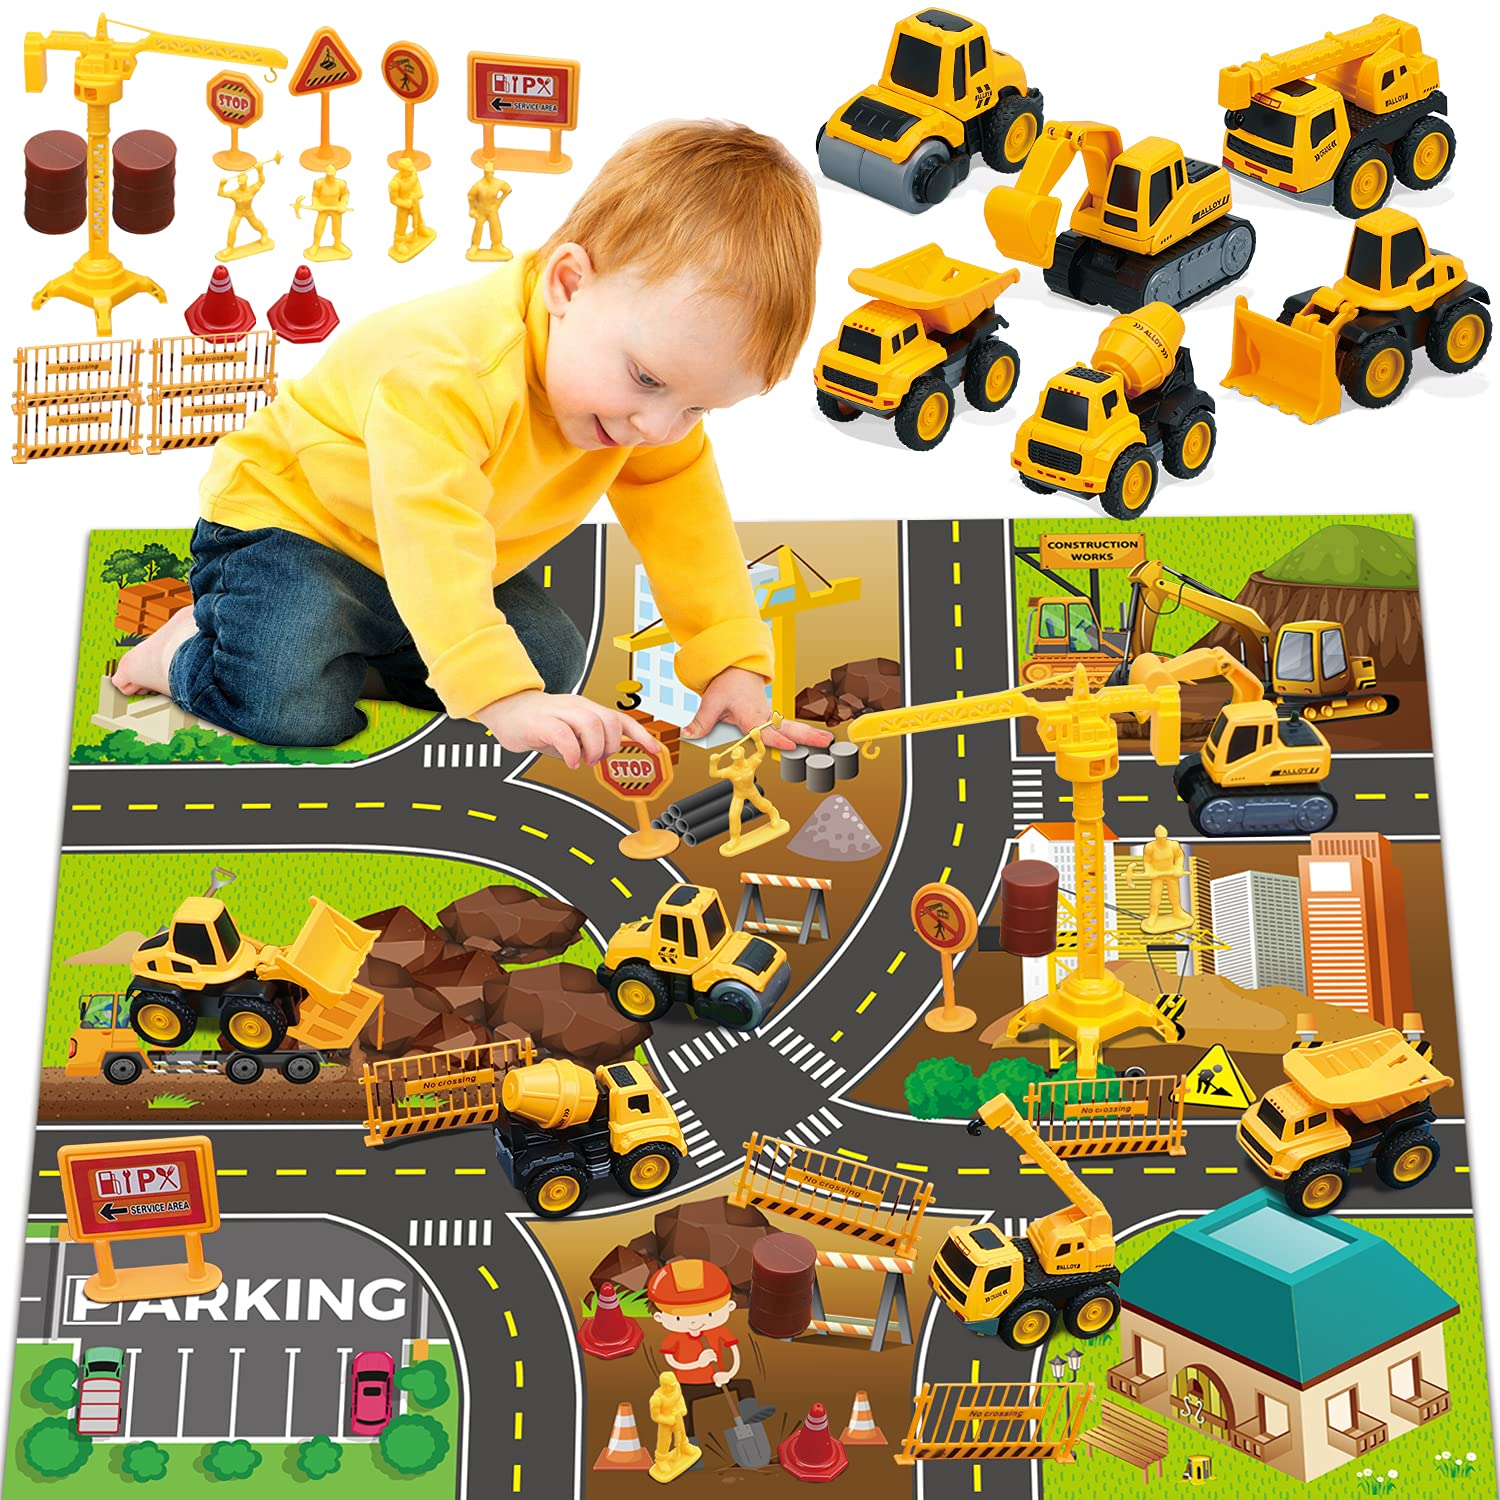 TOY Life Construction Vehicles Truck Sandbox Toy Set for Kids with 27.75x32.28 Inch Play Car Mat& 6 Construction Diecast Pull Back Cars -Construction Truck Tractor Excavator Cake Topper Toy for Boy 3+